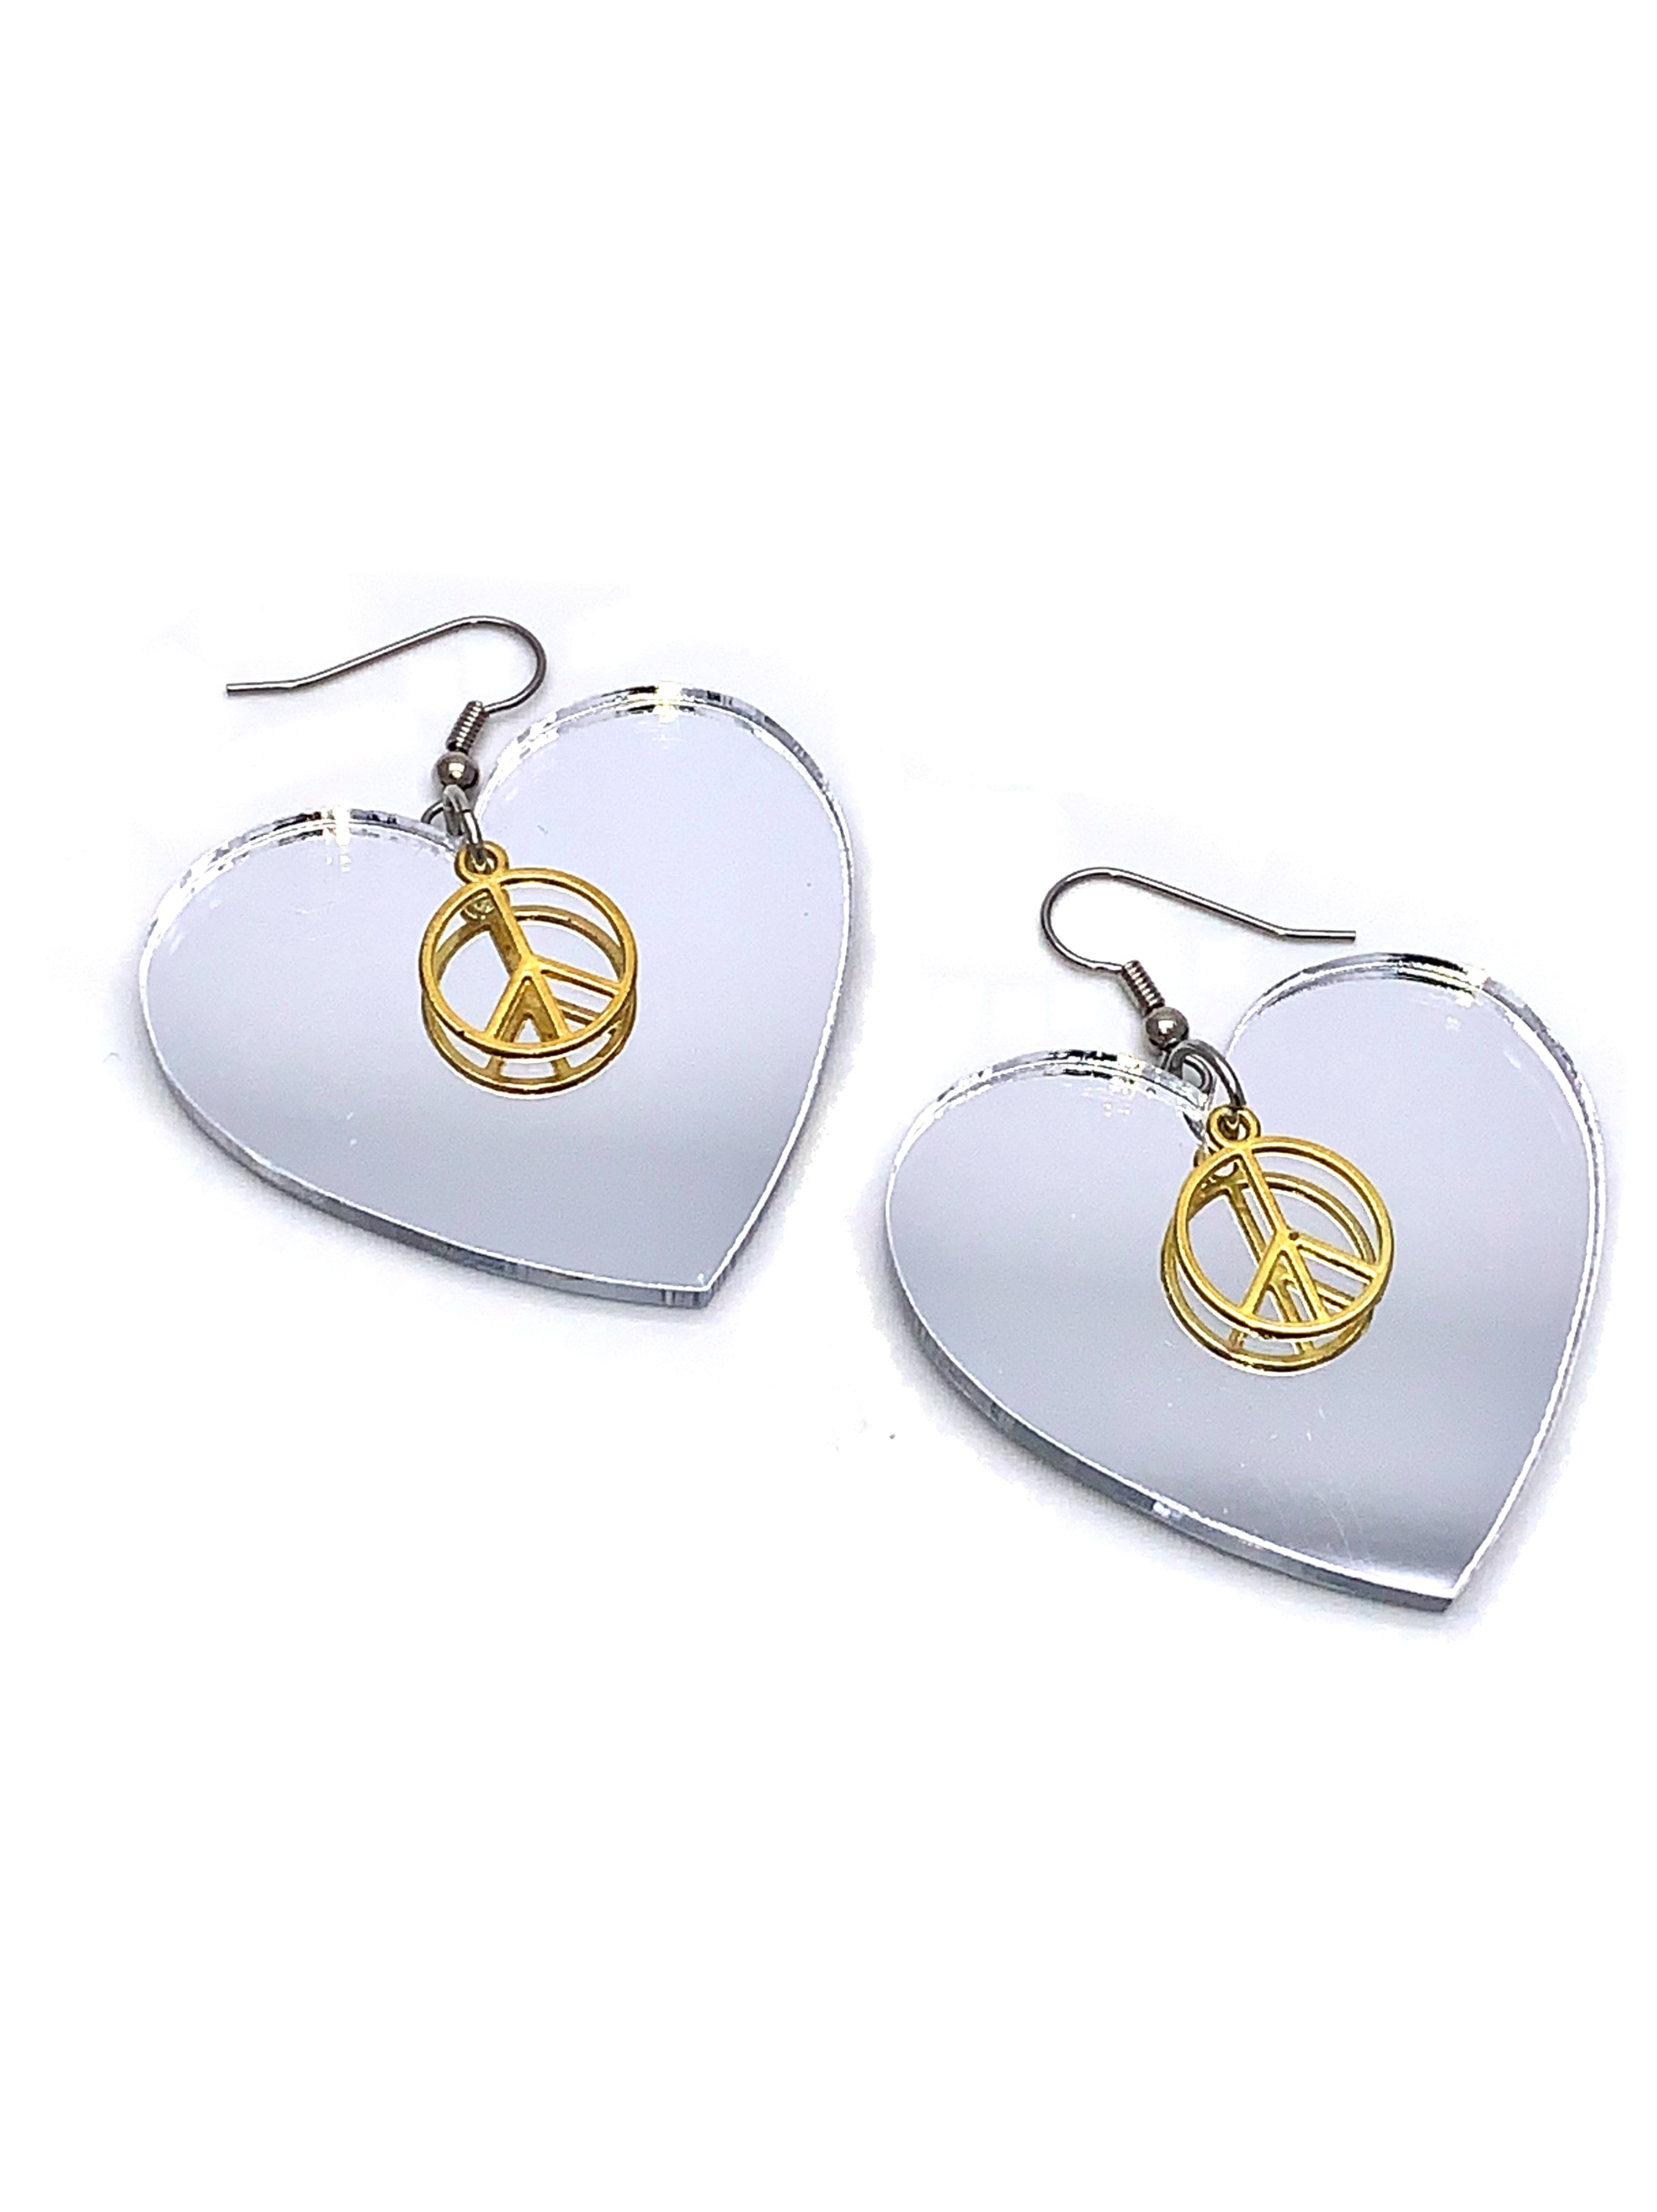 Mirror Heart Earrings Replica Brand New Prince Lovesexy